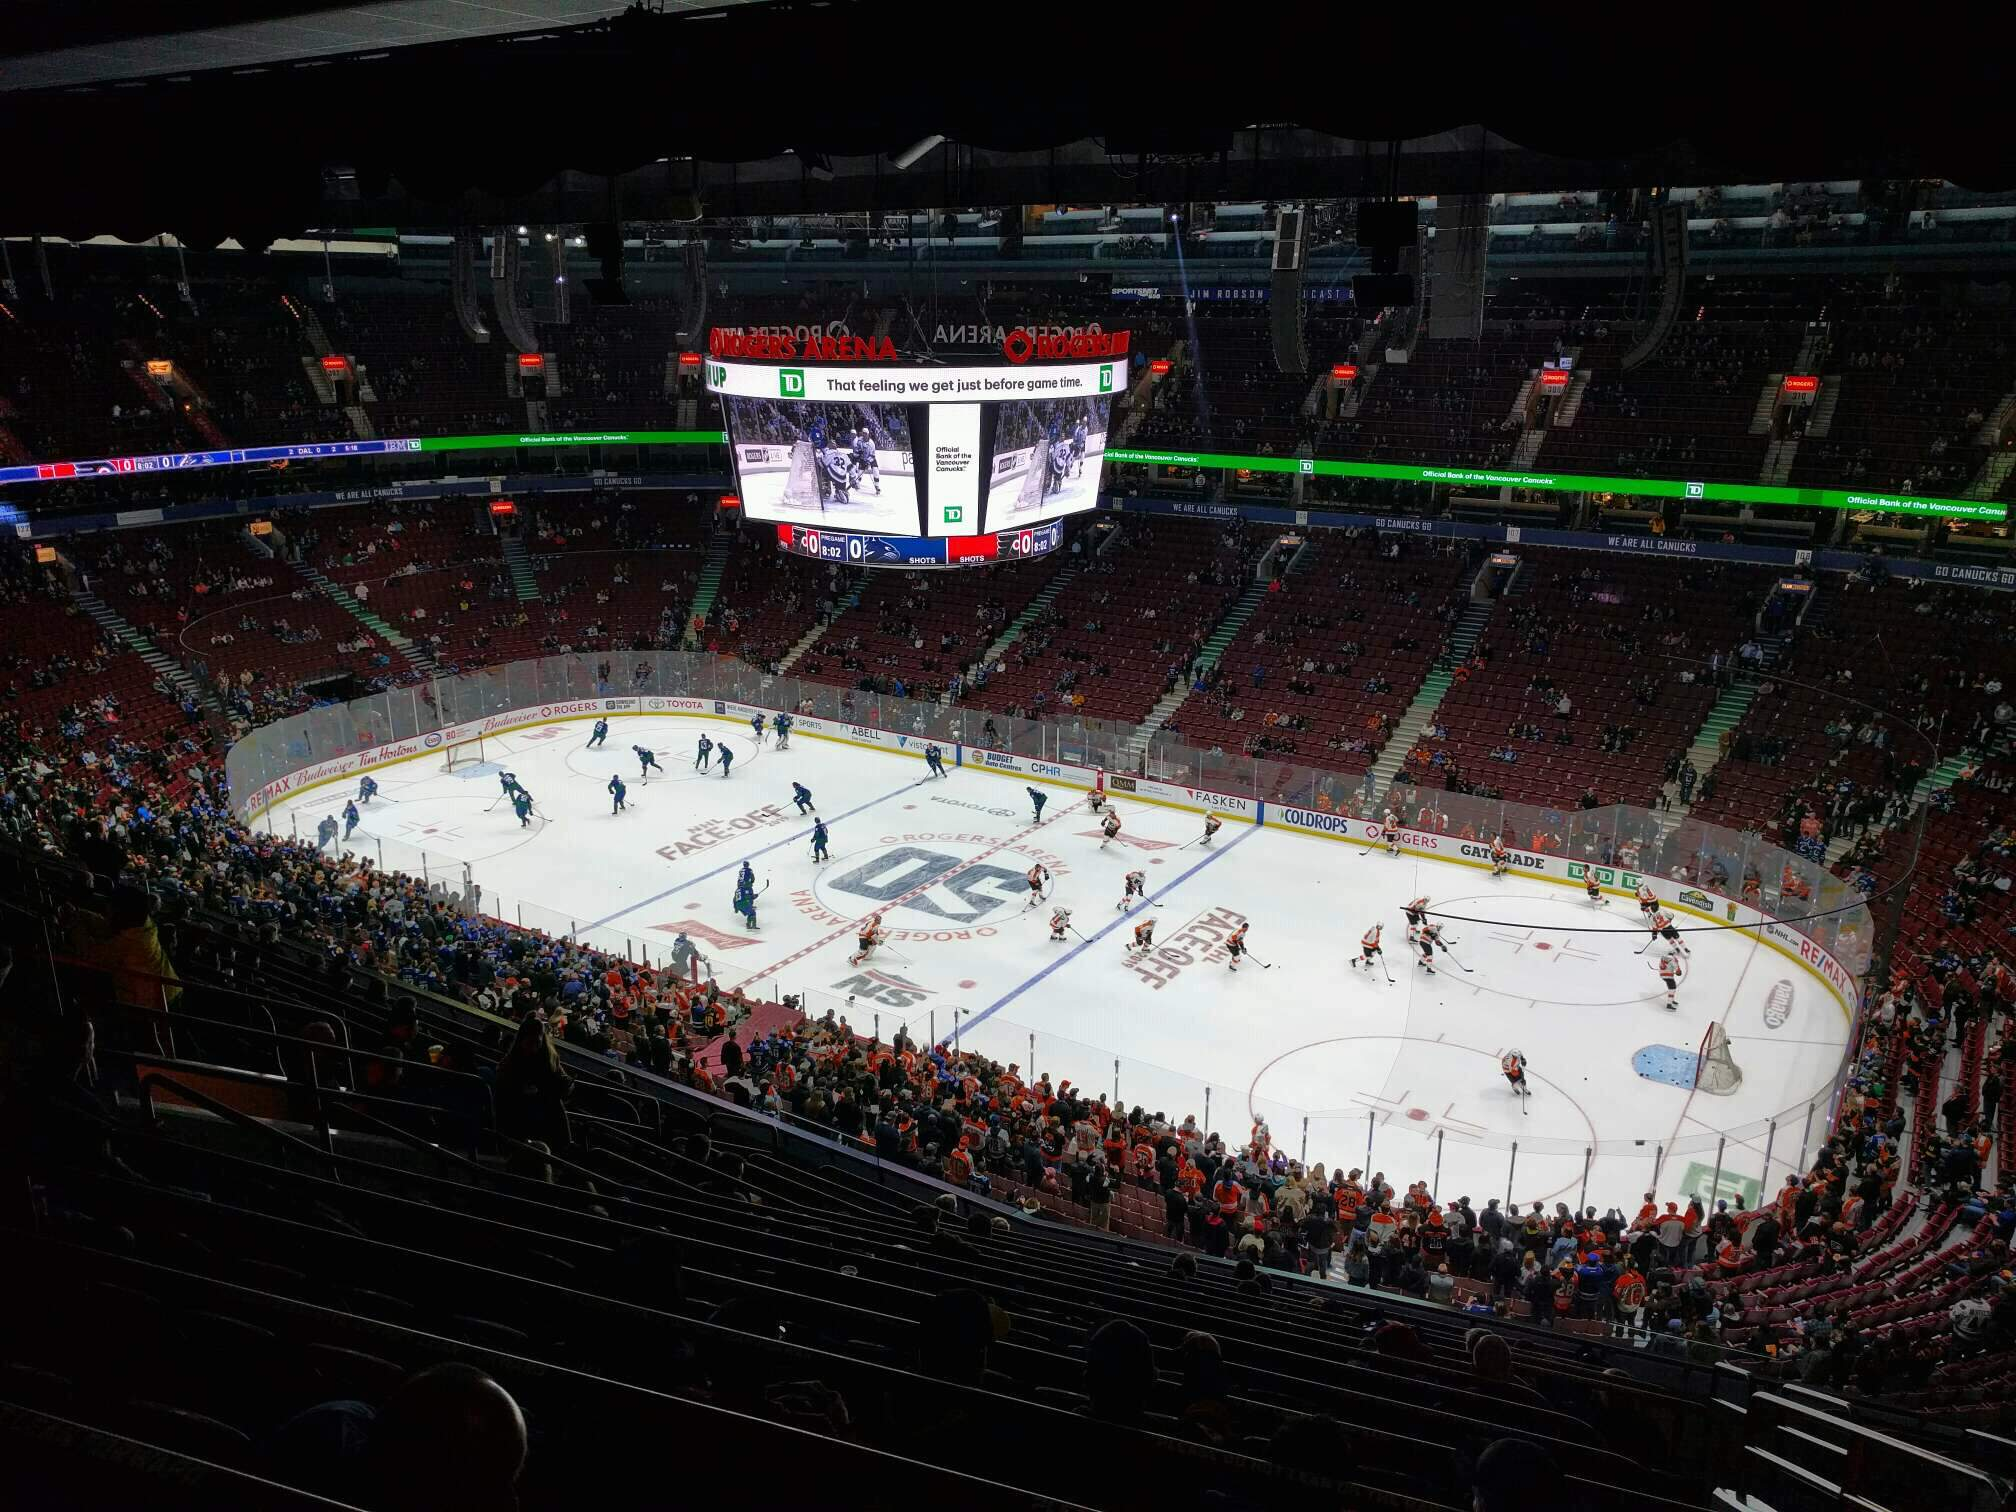 Rogers Arena Section 320 Row 14 Seat 105